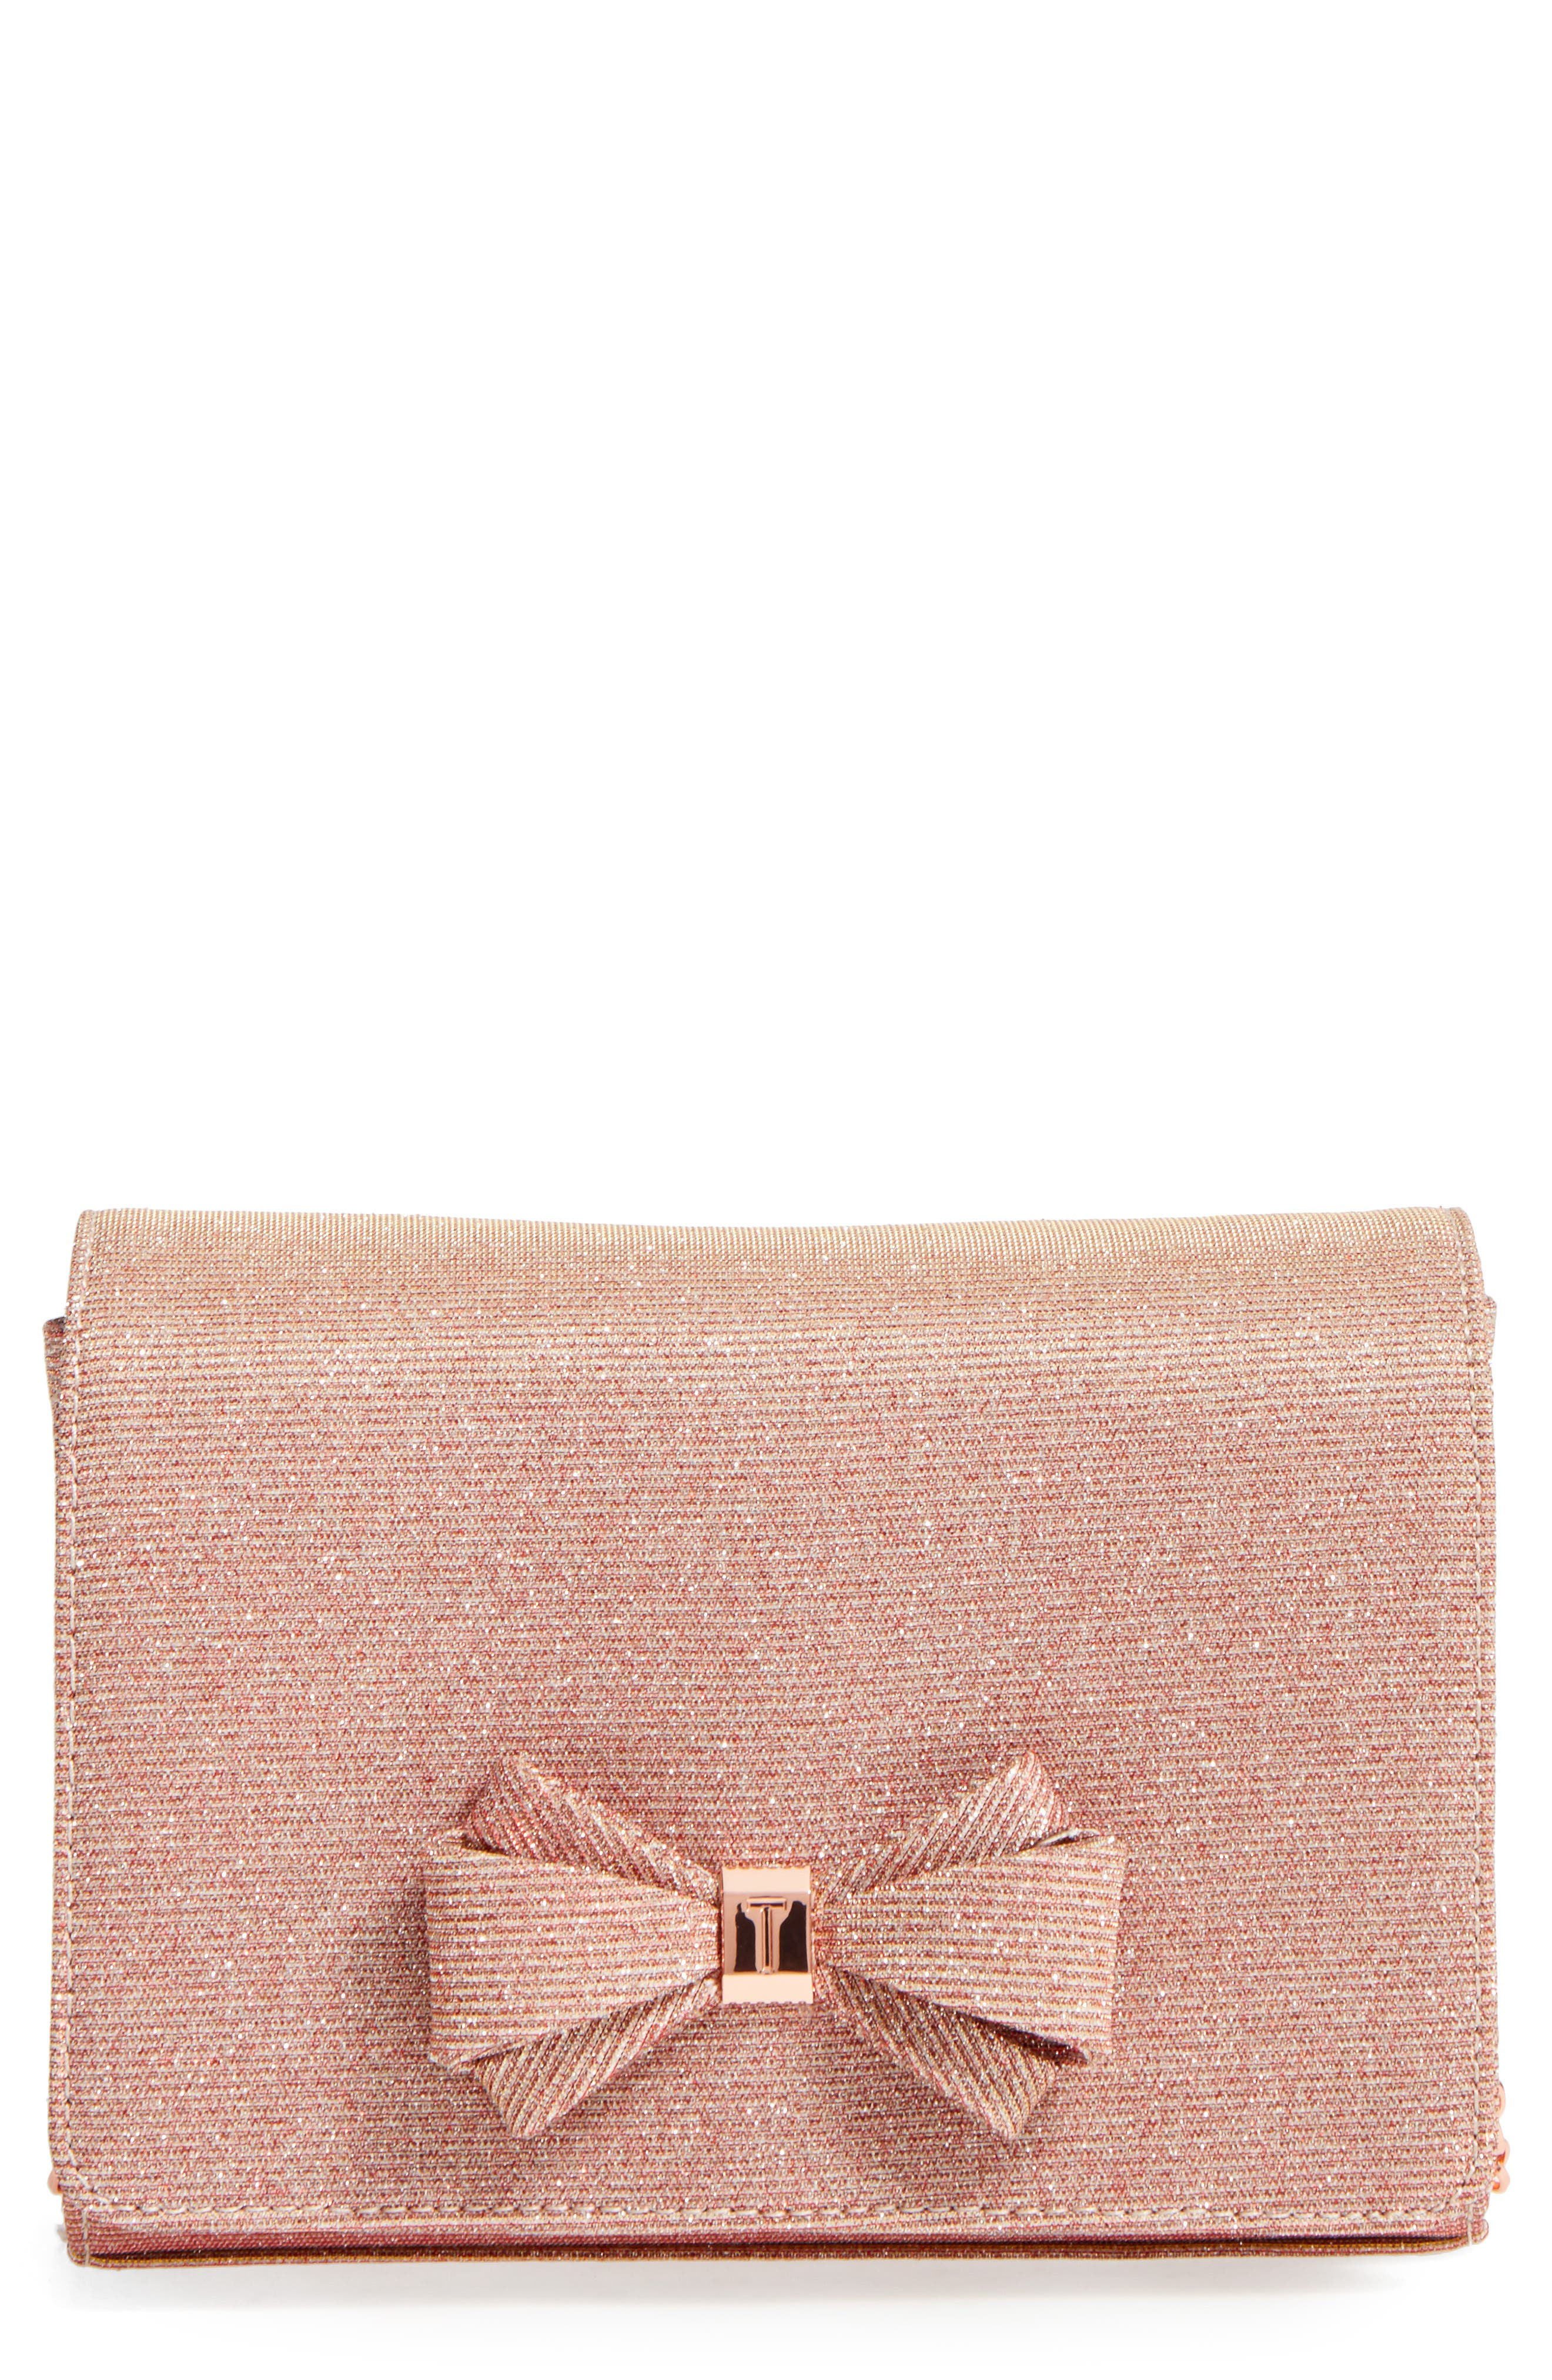 Main Image - Ted Baker London Glitter Bow Clutch